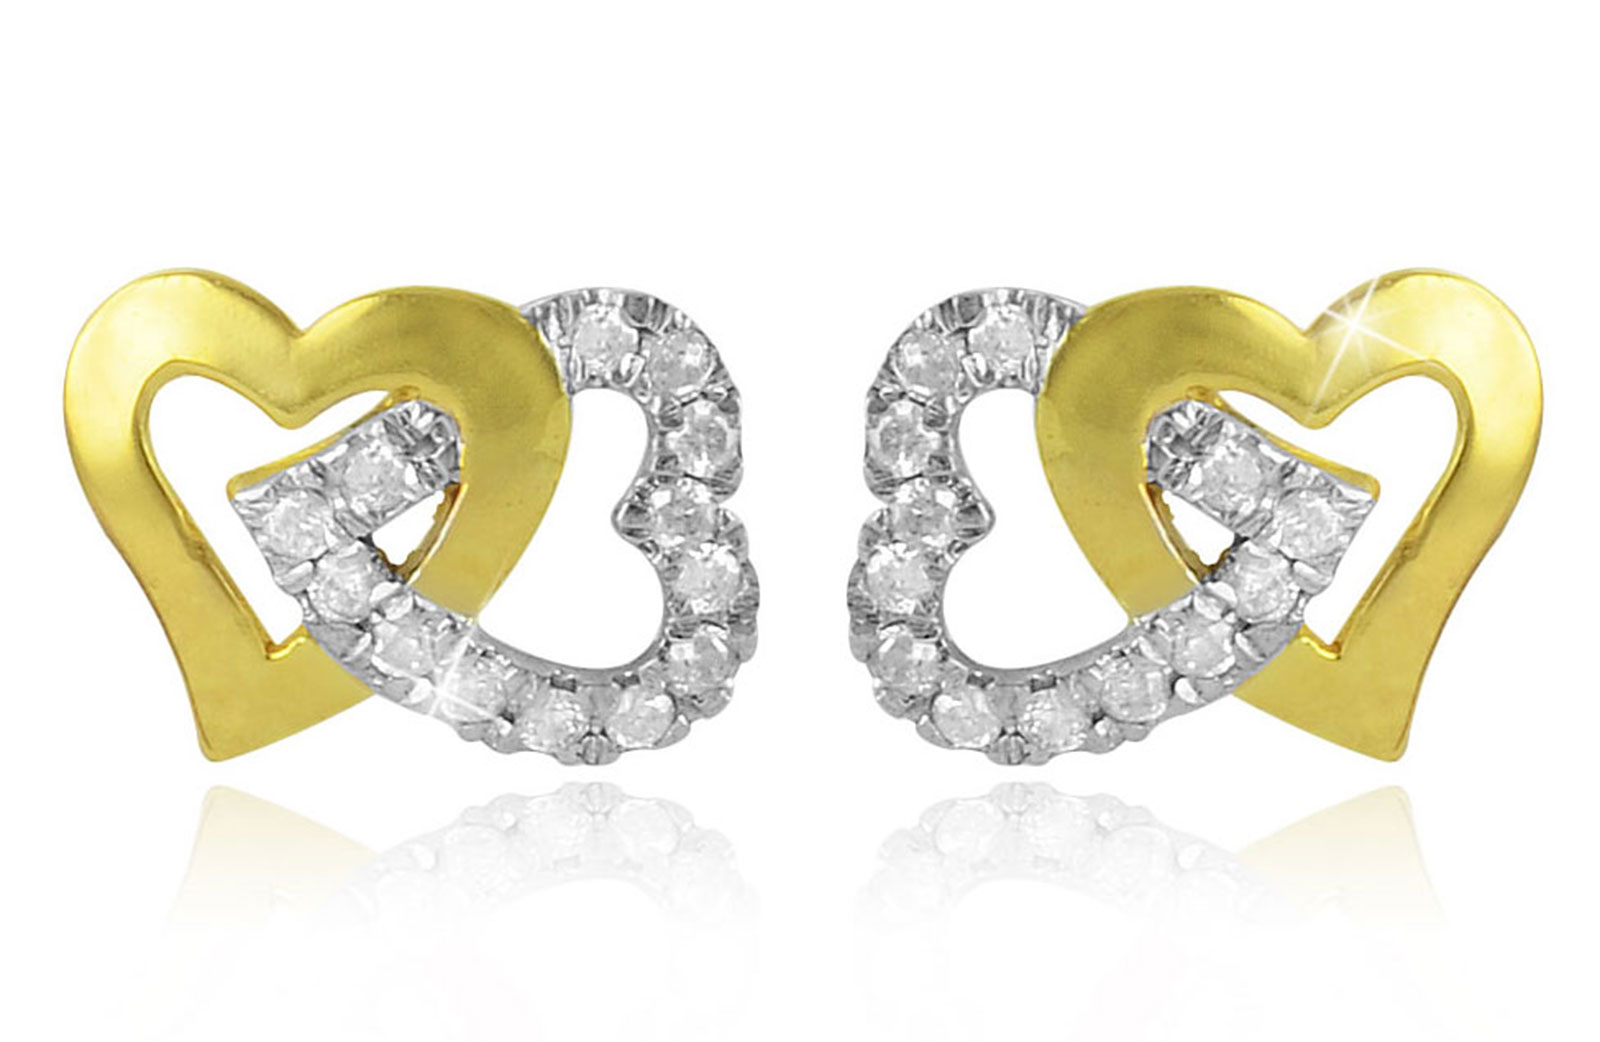 Vera Perla 18K Solid Gold and 0.30Cts Diamonds Interlocking Hearts Earrings